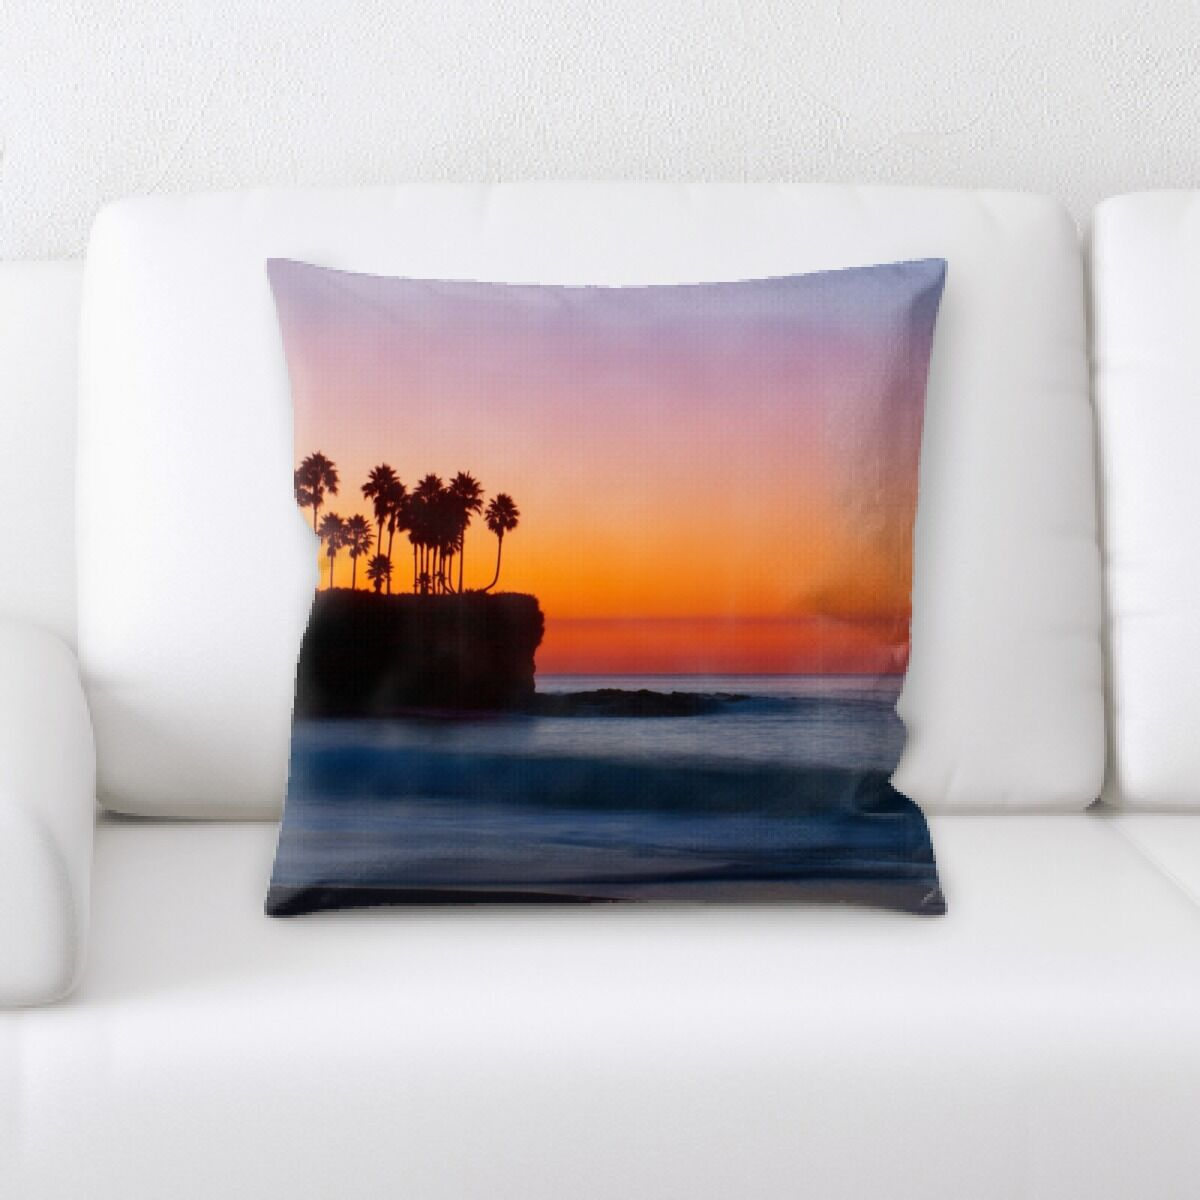 Bright Mountain and Cliffs (206) Throw Pillow